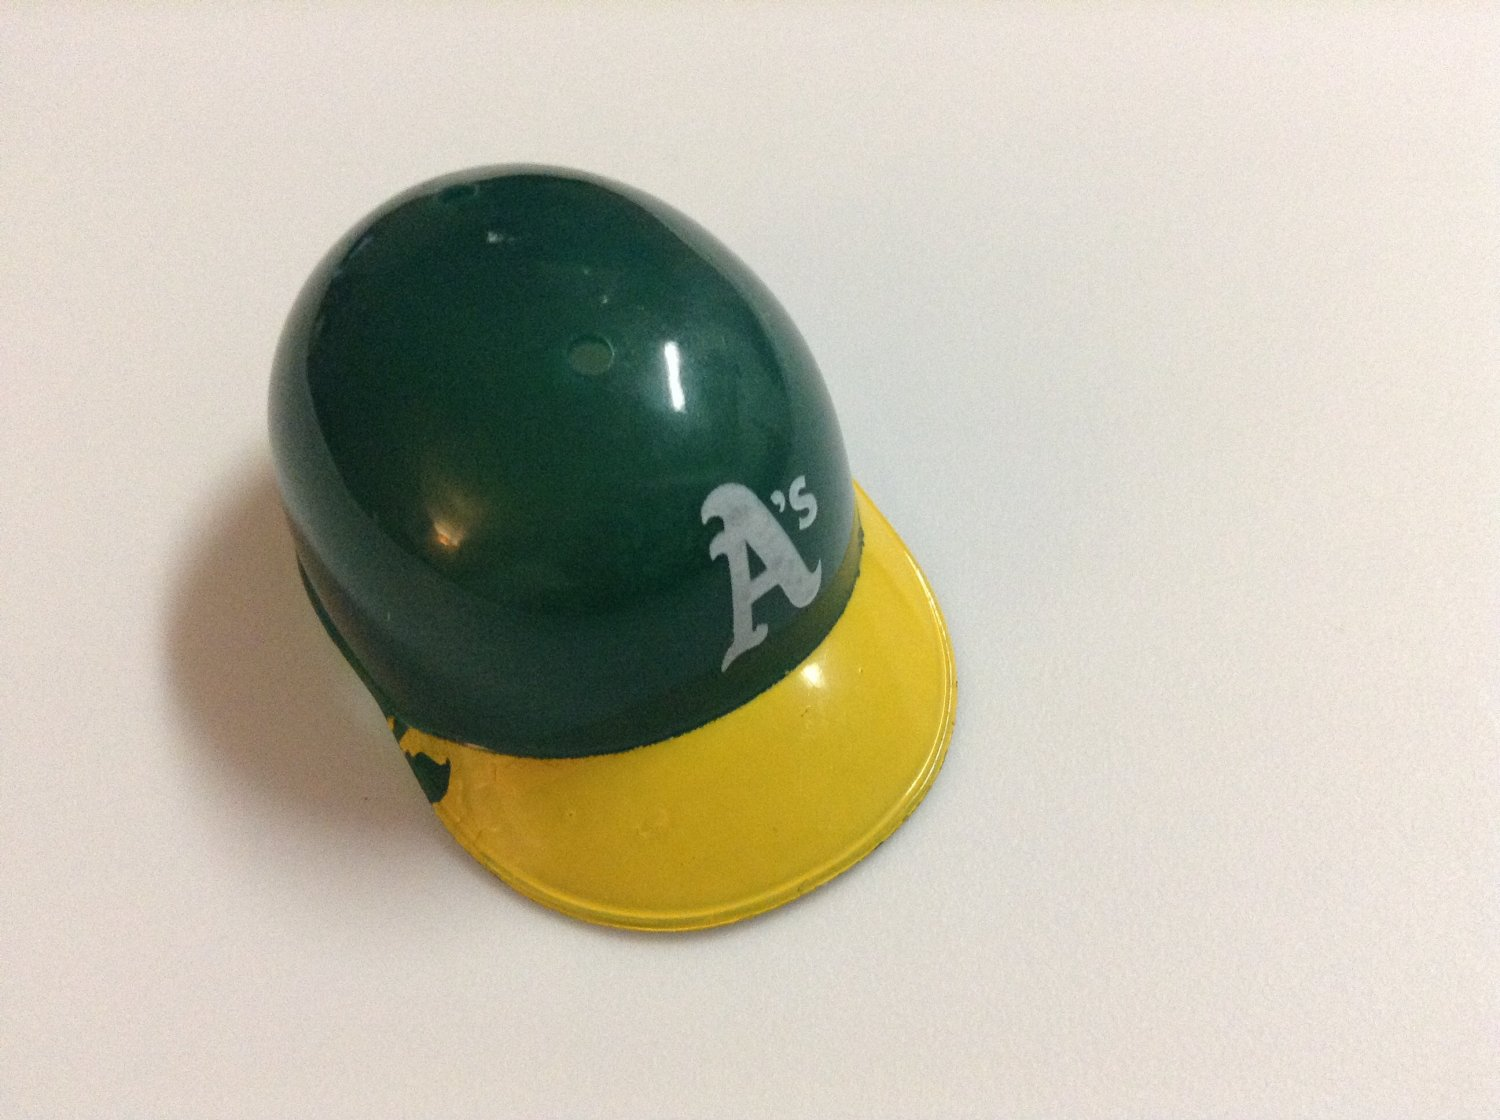 MLB Mini Helmet - Fits Barbie - Oakland Athletics